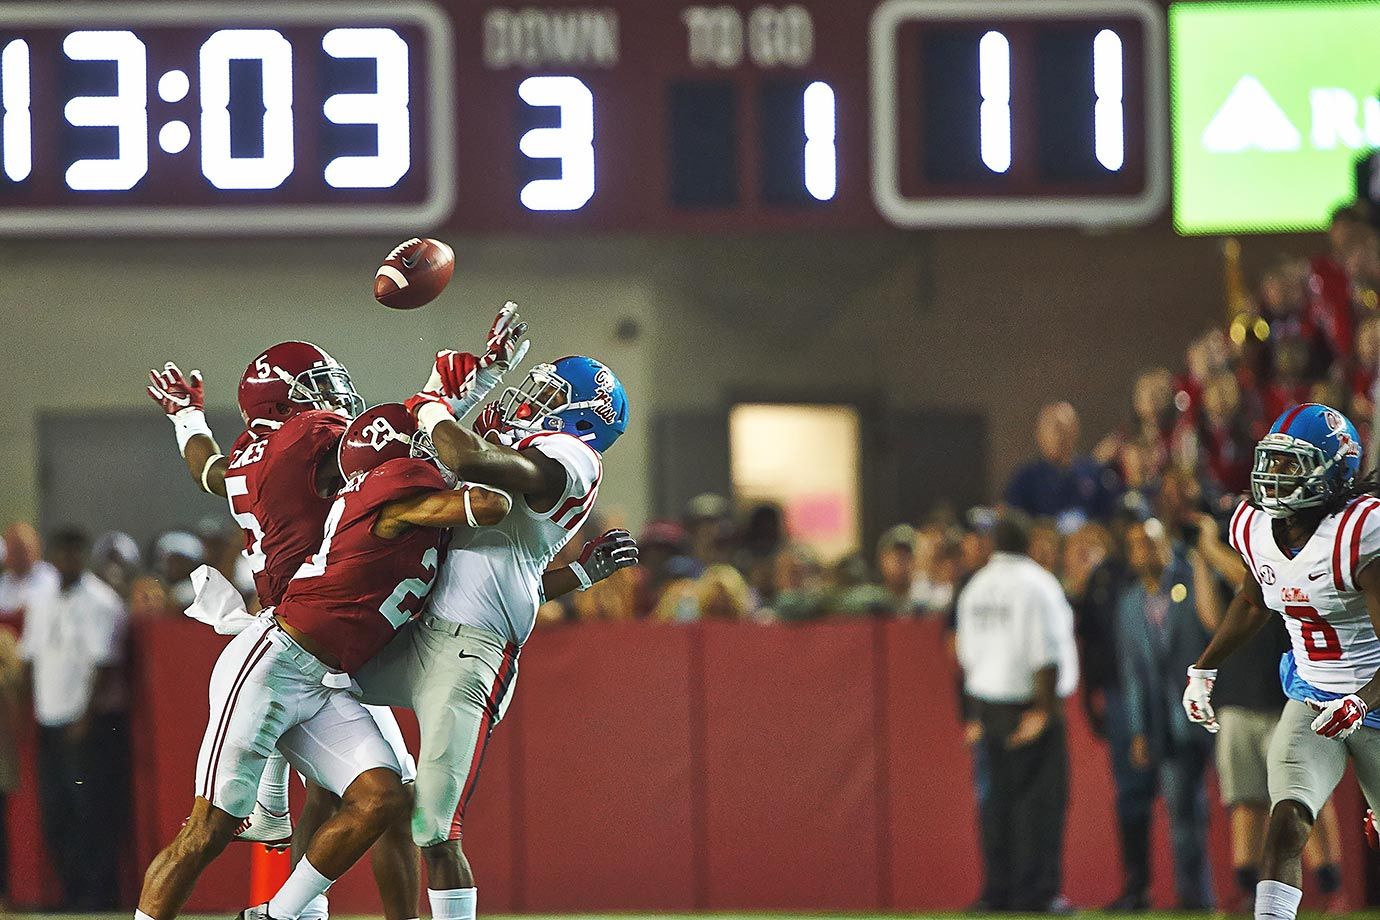 """The 2015 iteration of """"Let's Get Weird,"""" Ole Miss-Alabama featured one of the most unlikely touchdowns of the season, one of the most vicious hits of the season and the Crimson Tide's only loss of the season. For a moment we thought Chad Kelly would be the SEC's breakout star and Ole Miss would be a national title contender, but then the Rebels proceeded to get blown out by Florida two weeks later."""